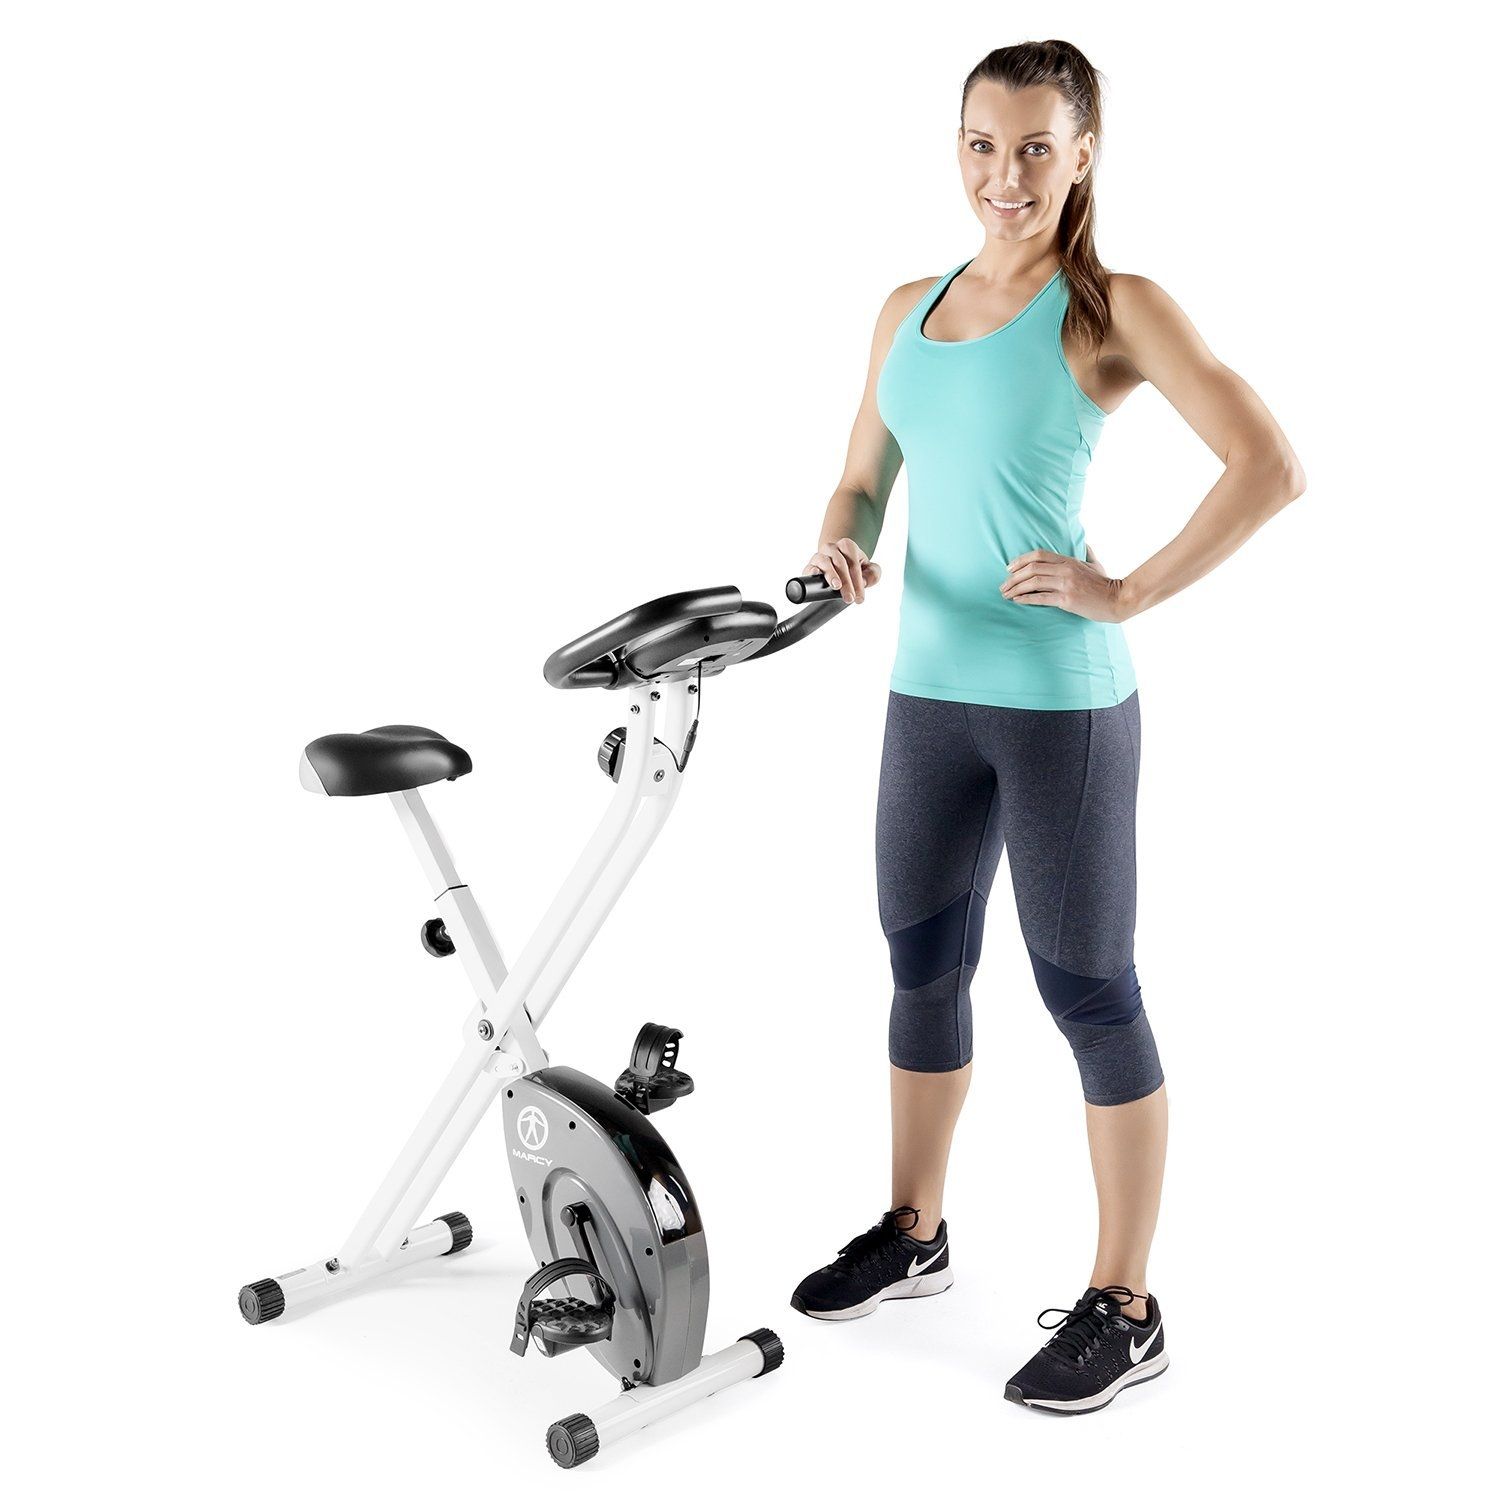 Marcy Foldable Exercise Bike - White - Counterweighted Pe...